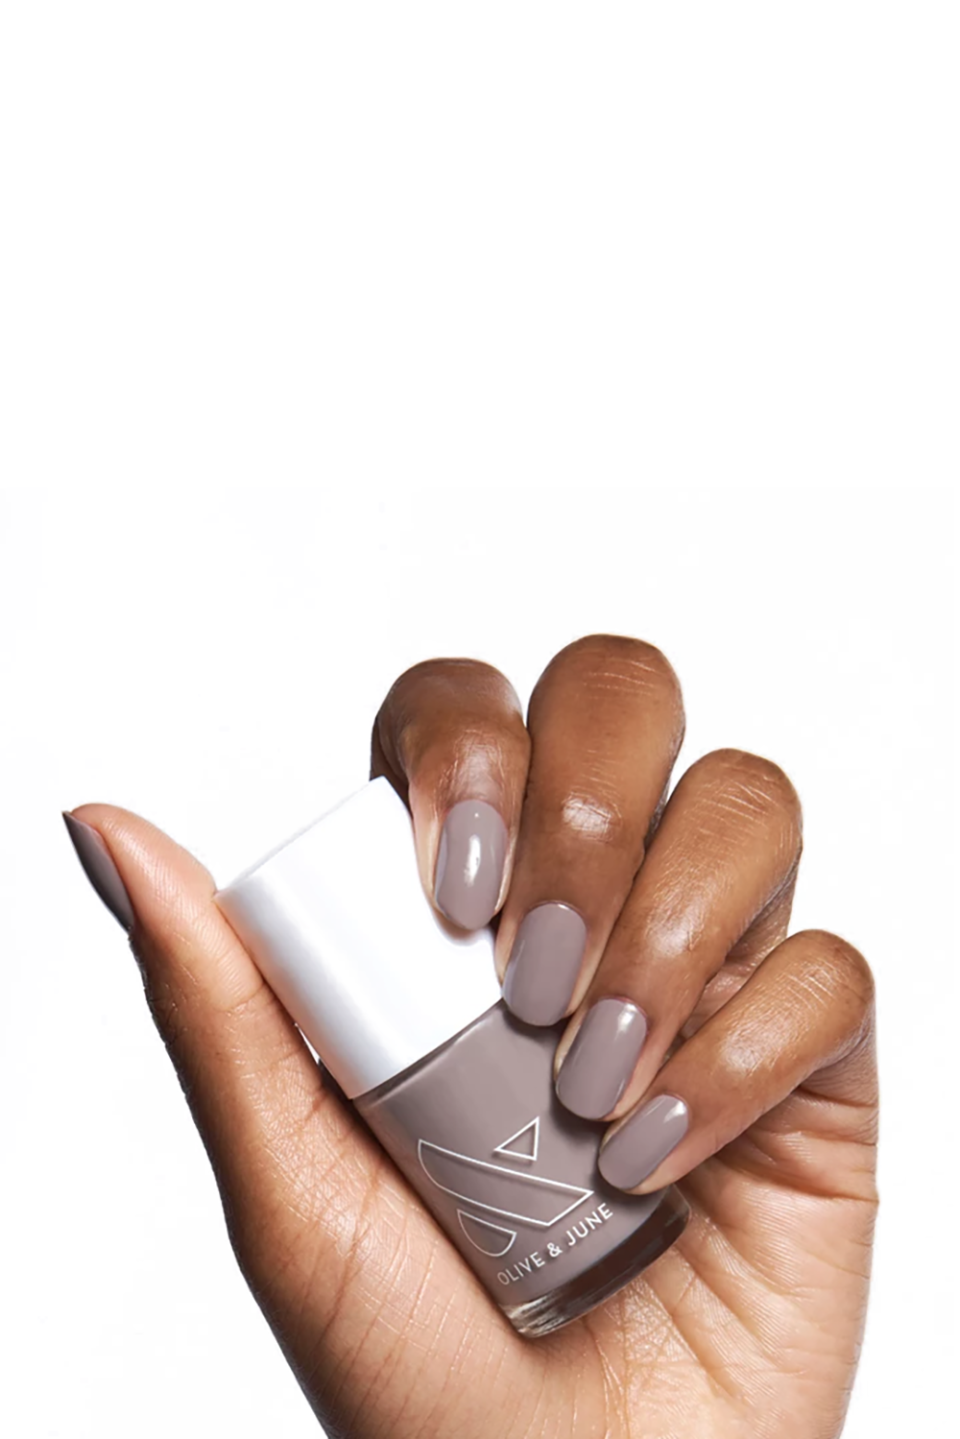 """<p><strong>Olive & June Nail Color in AW</strong></p><p>olivejune.com</p><p><strong>$8.00</strong></p><p><a href=""""https://go.redirectingat.com?id=74968X1596630&url=https%3A%2F%2Folivejune.com%2Fproducts%2Fmm&sref=https%3A%2F%2Fwww.marieclaire.com%2Fbeauty%2Fg3965%2Ffall-nail-colors%2F"""" rel=""""nofollow noopener"""" target=""""_blank"""" data-ylk=""""slk:SHOP IT"""" class=""""link rapid-noclick-resp"""">SHOP IT</a></p><p>Lean into the coolness of this season with this muted, taupe-toned grey that will look stunning on all skin tones. </p>"""